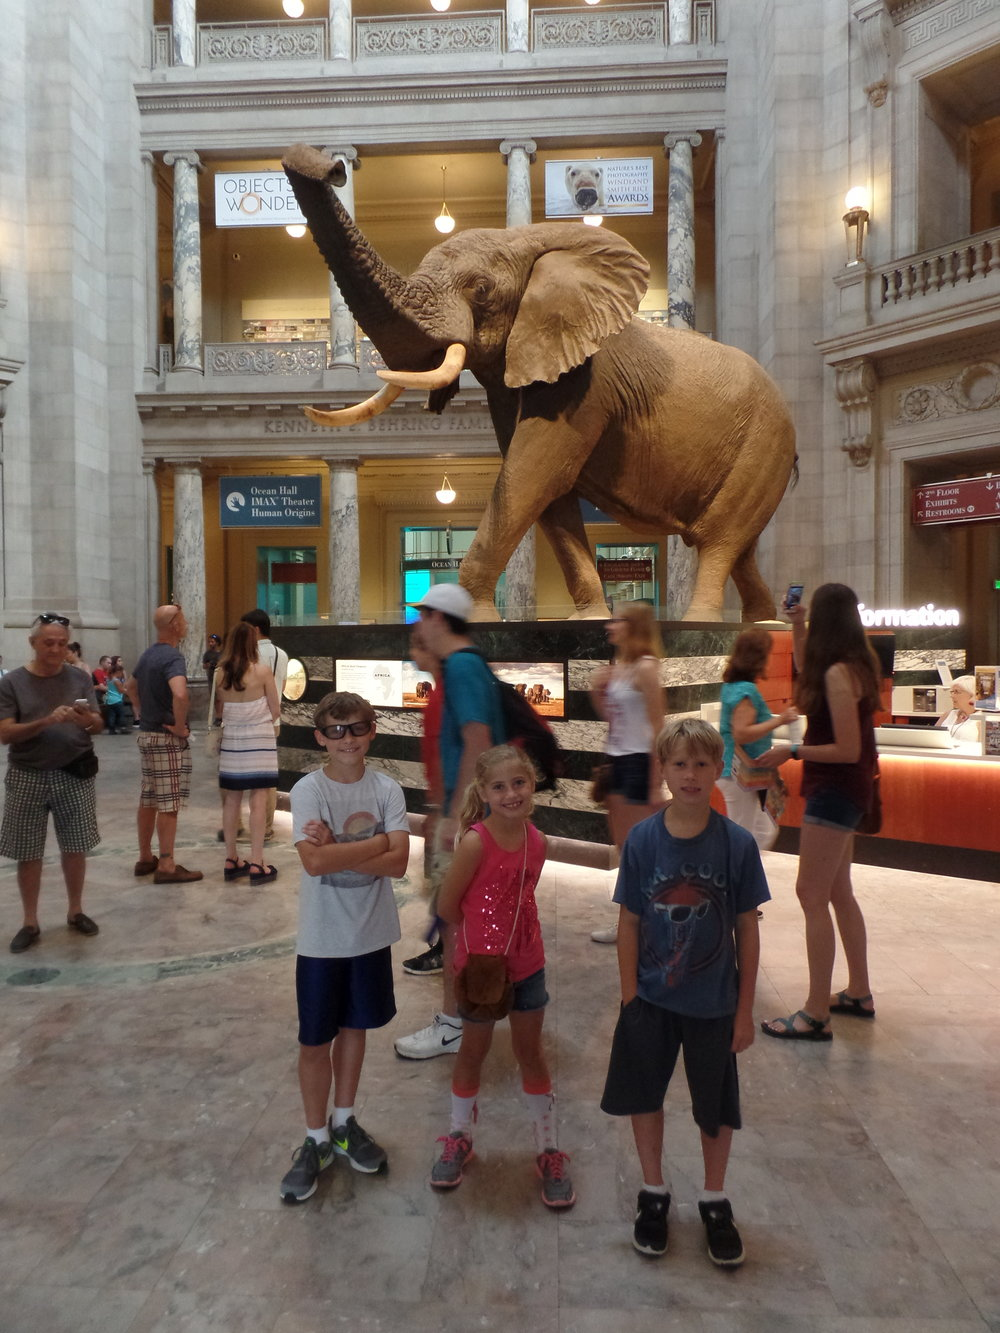 We visited the Natural History Museum. That was a big elephant.